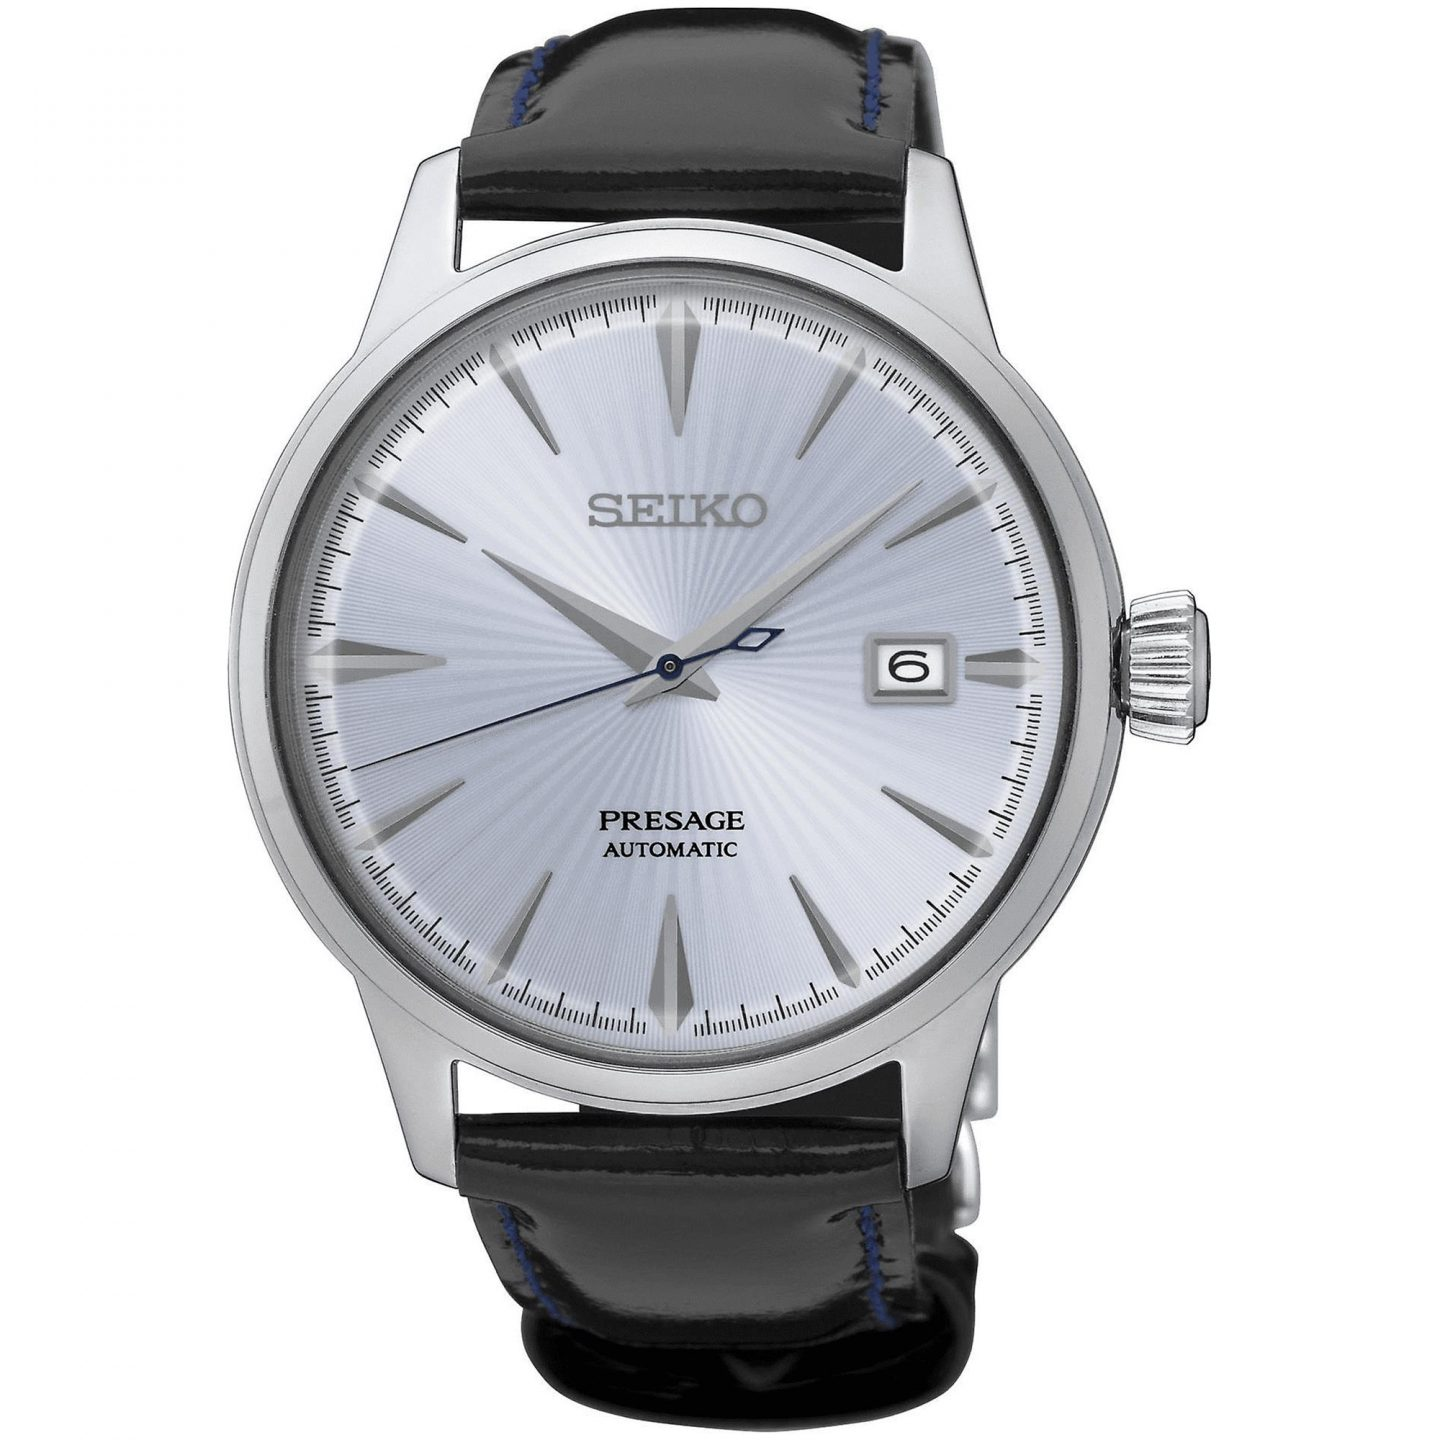 Seiko Presage Cocktail Automatic Blue Dial Leather Strap Mens Watch SRPB43J1 40.5mm